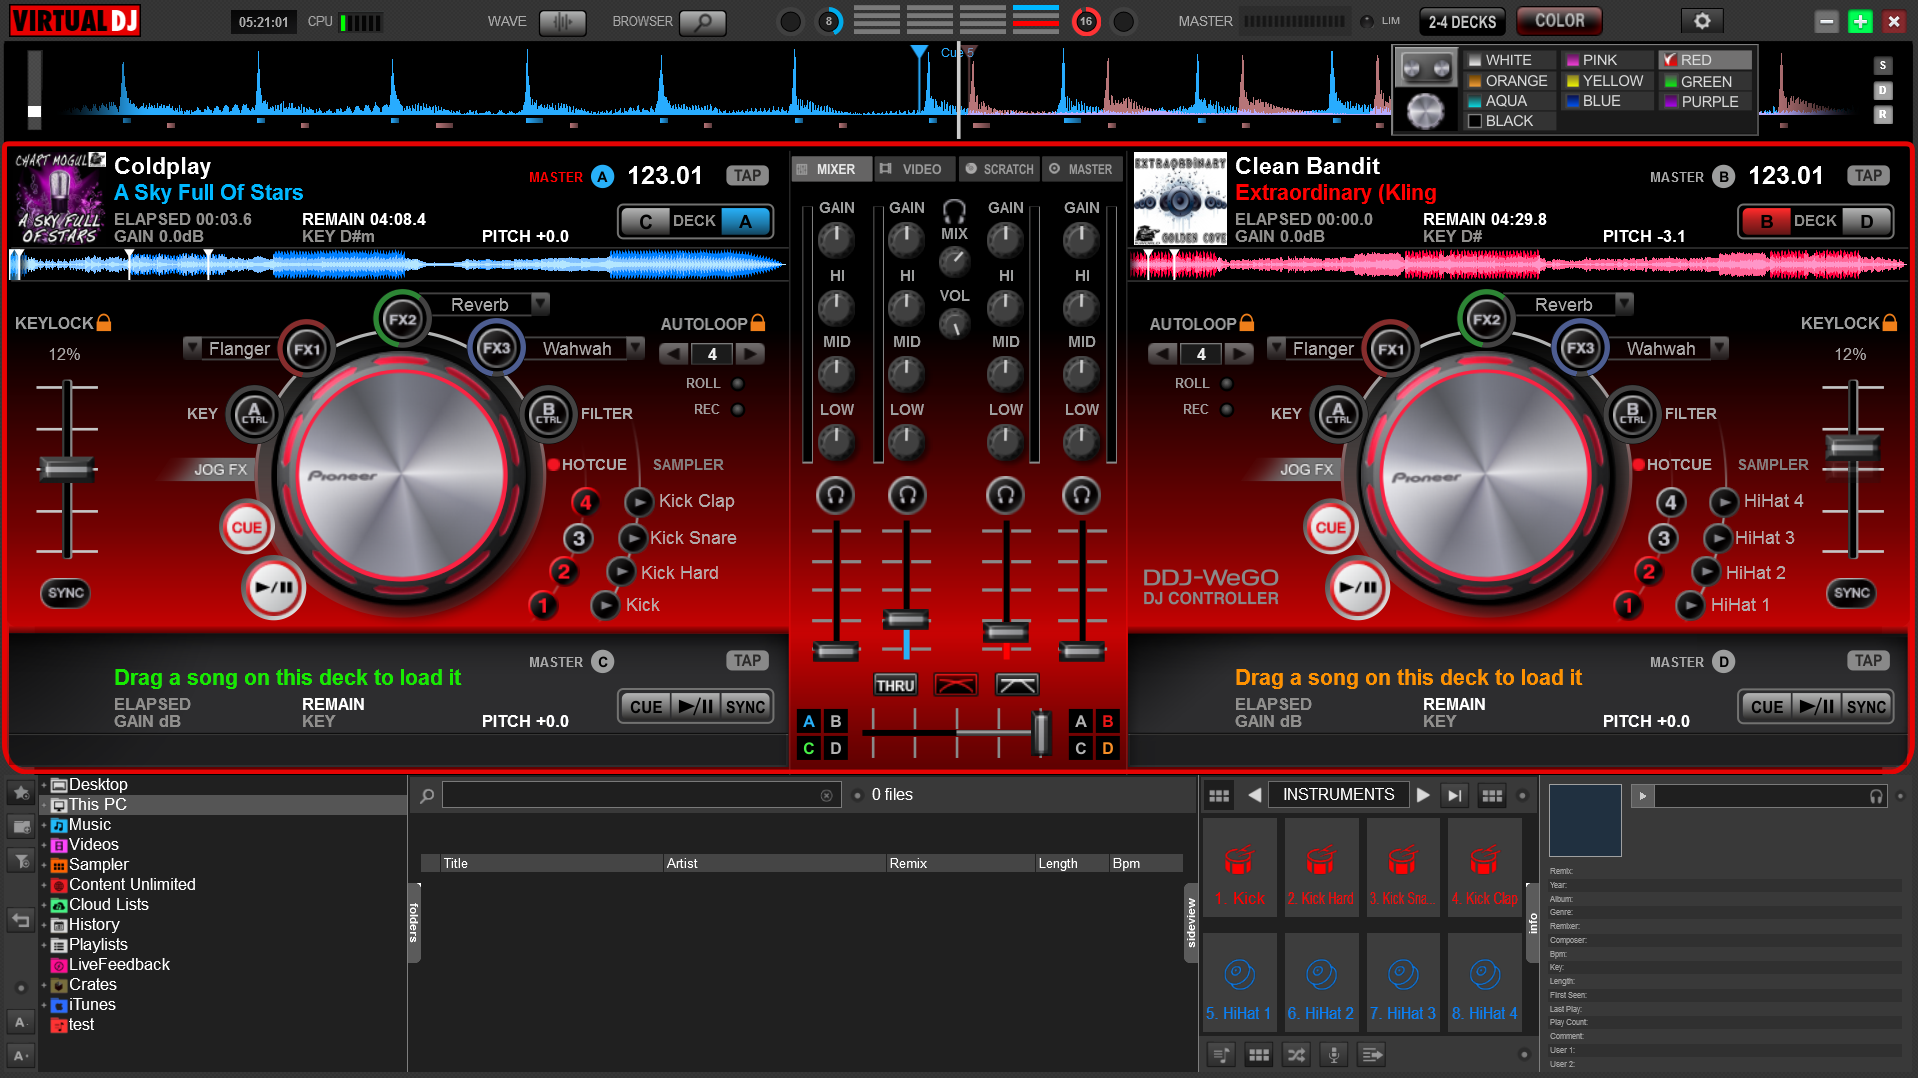 download visual dj for pc